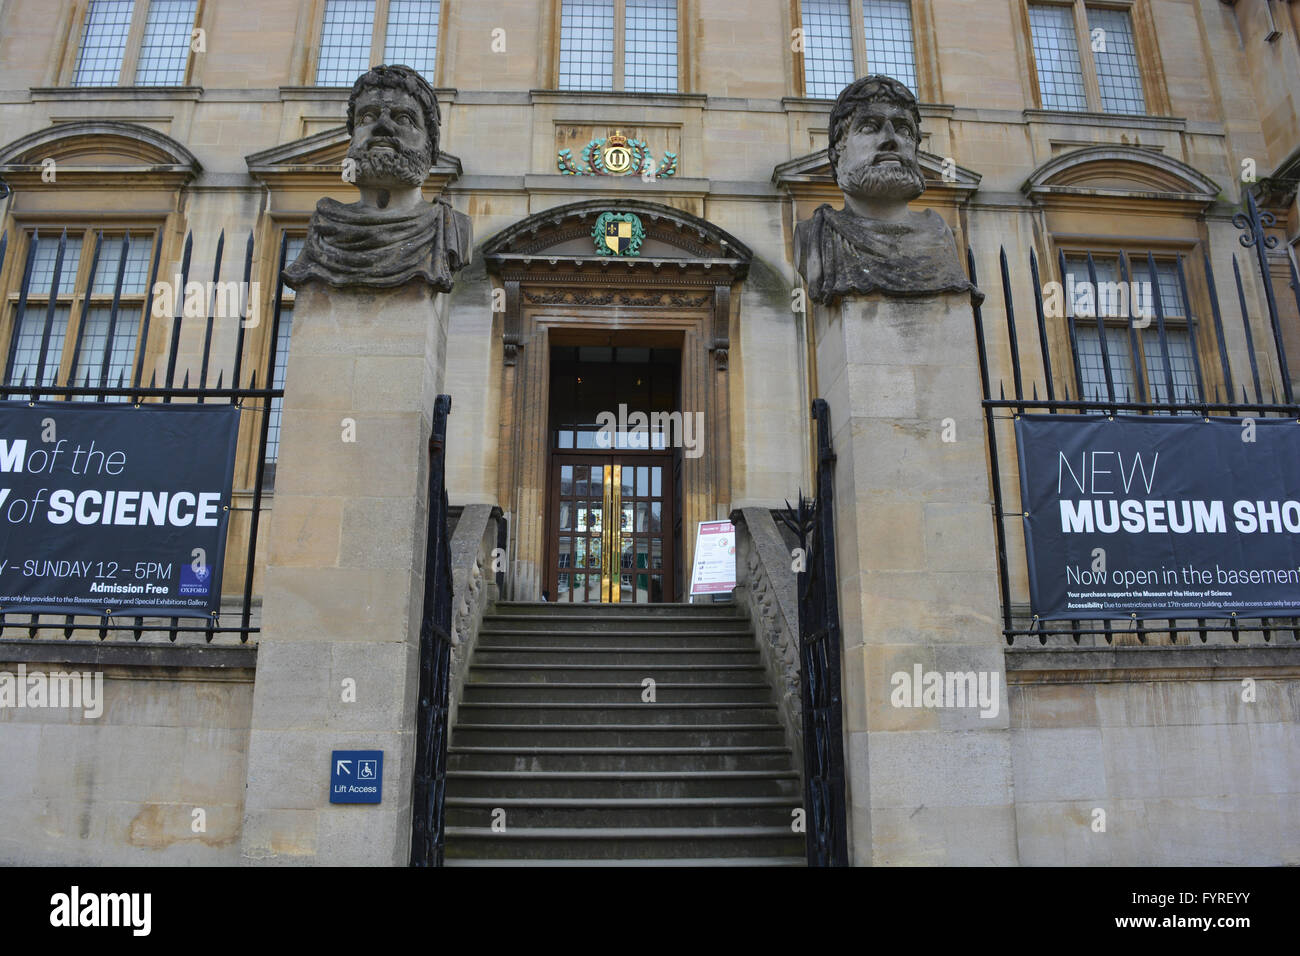 The Museum of the History of Science in Broad Street, Oxford, England, - Stock Image